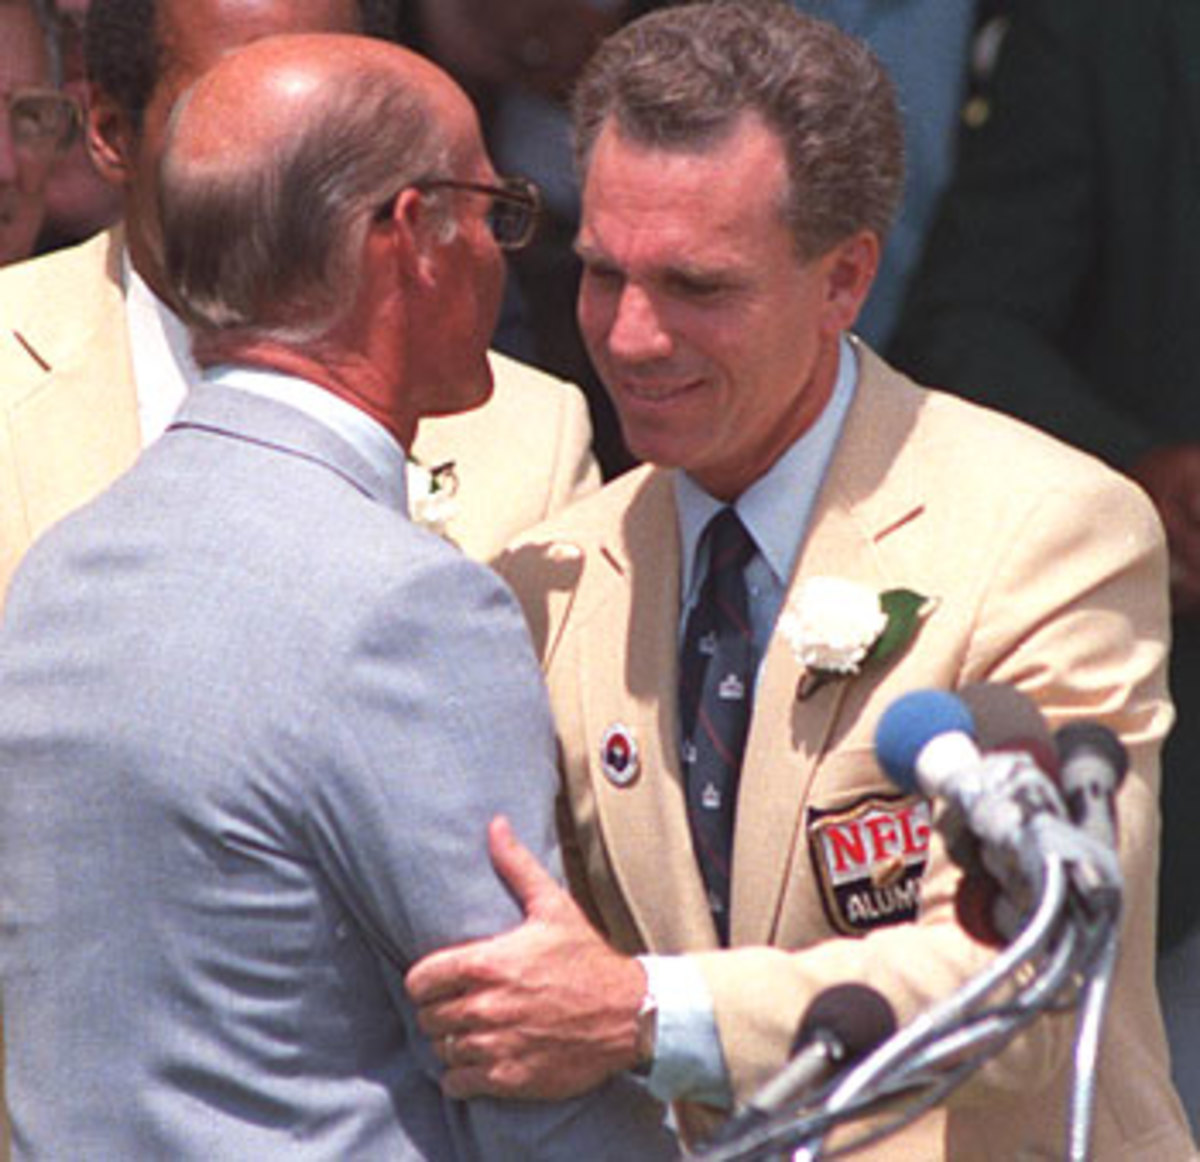 Roger Staubach being introduced by Tom Landry at Hall of Fame Induction.